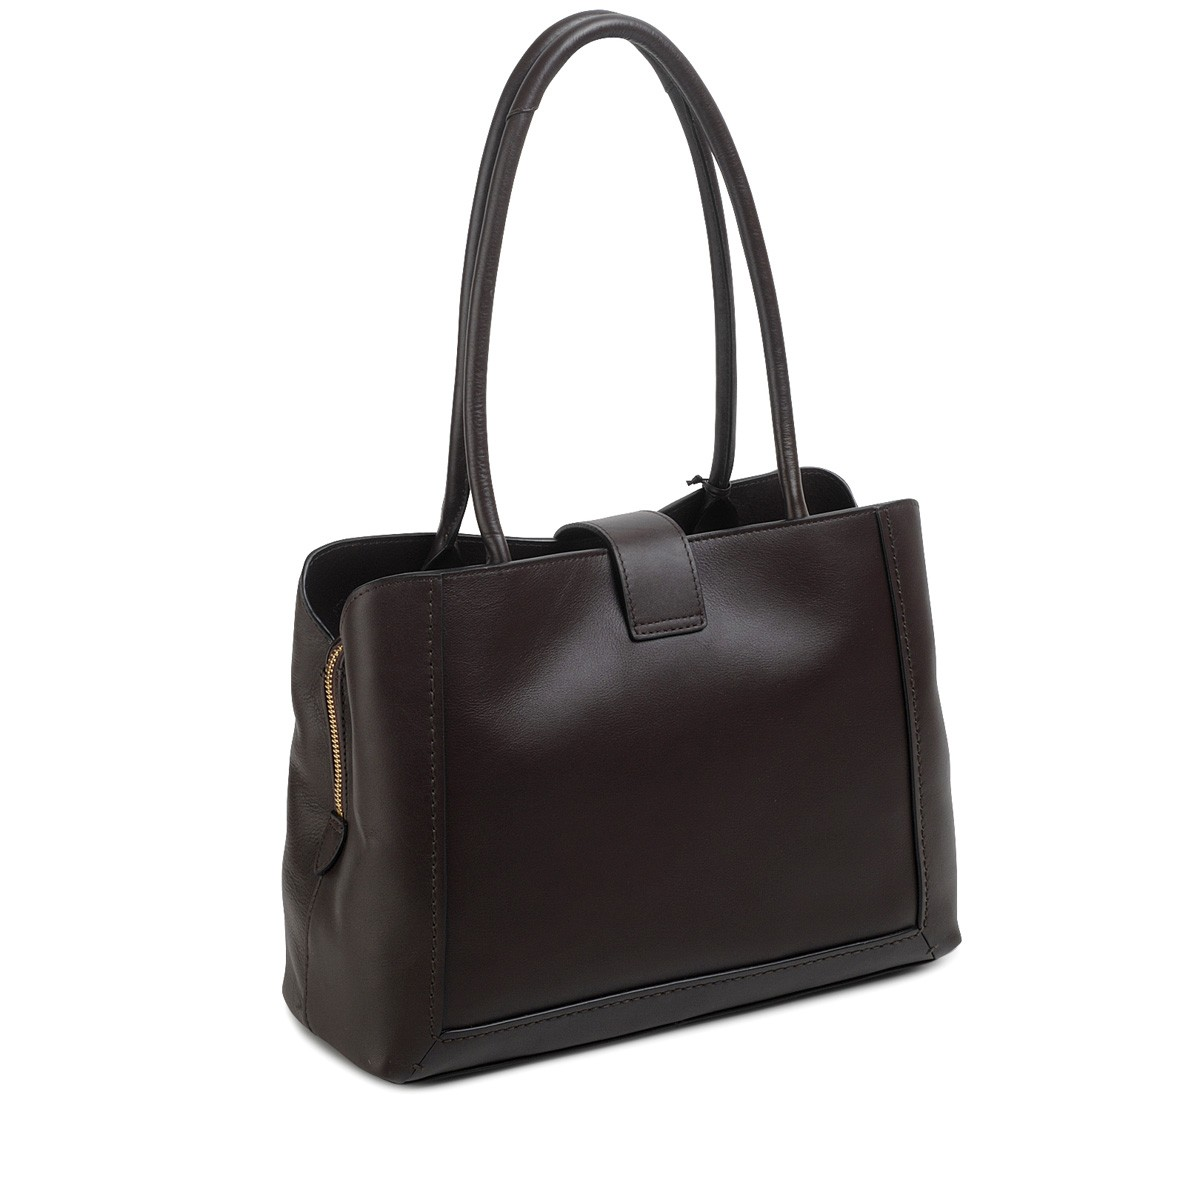 Radley London Primrosehill Large Zip-Top Tote Bag